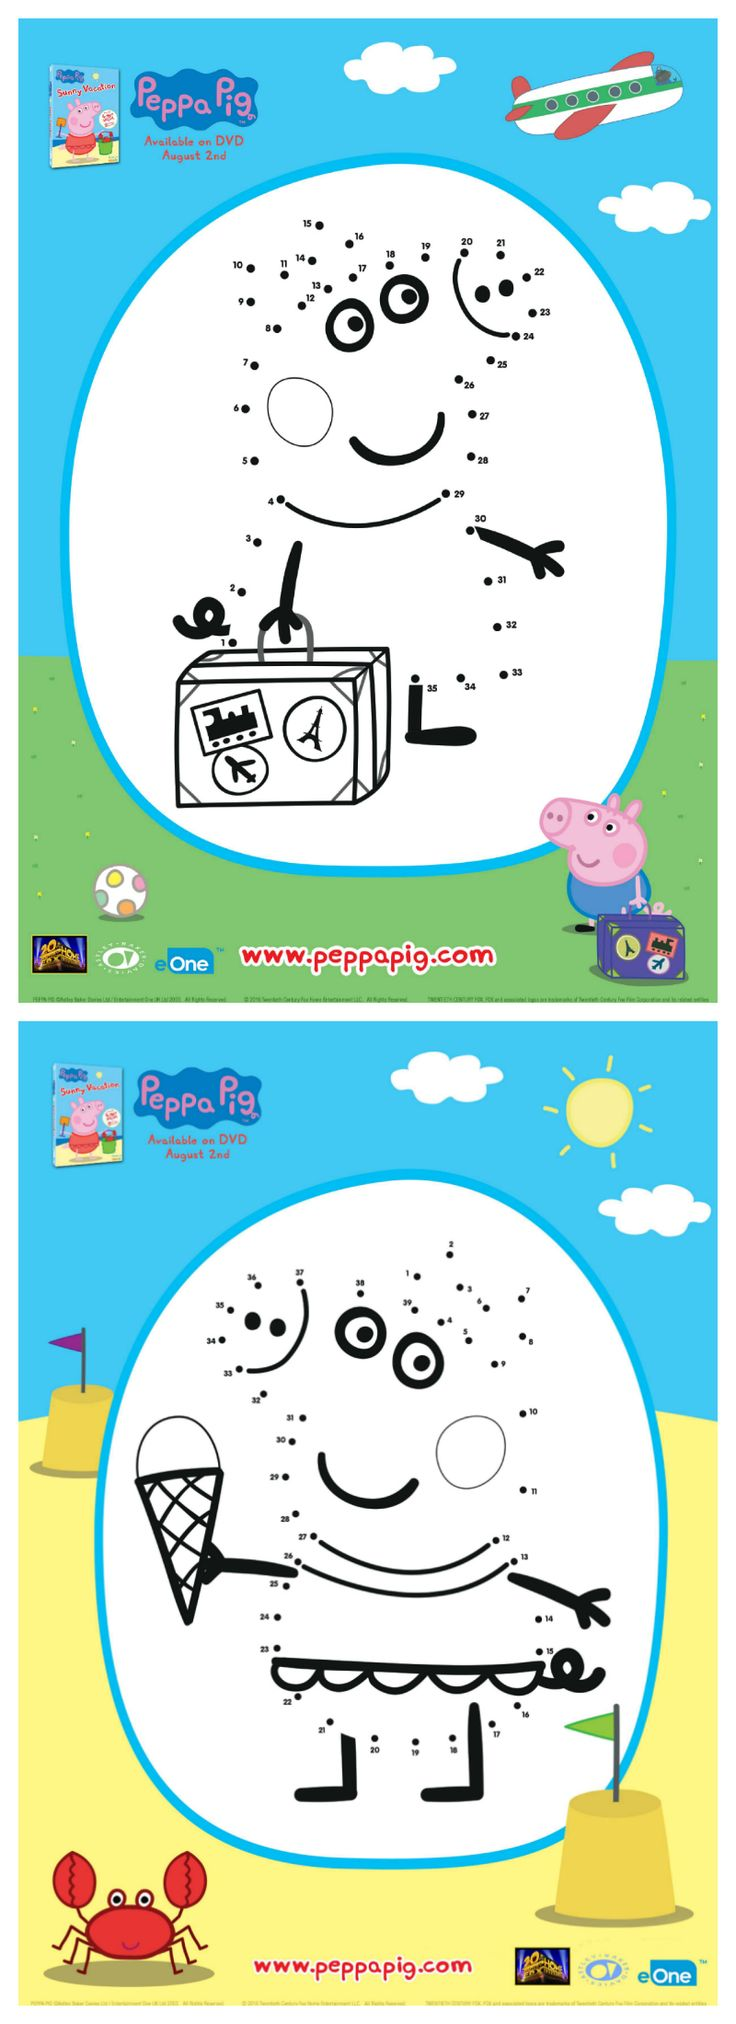 Peppa Pig Connect The Dots Activity